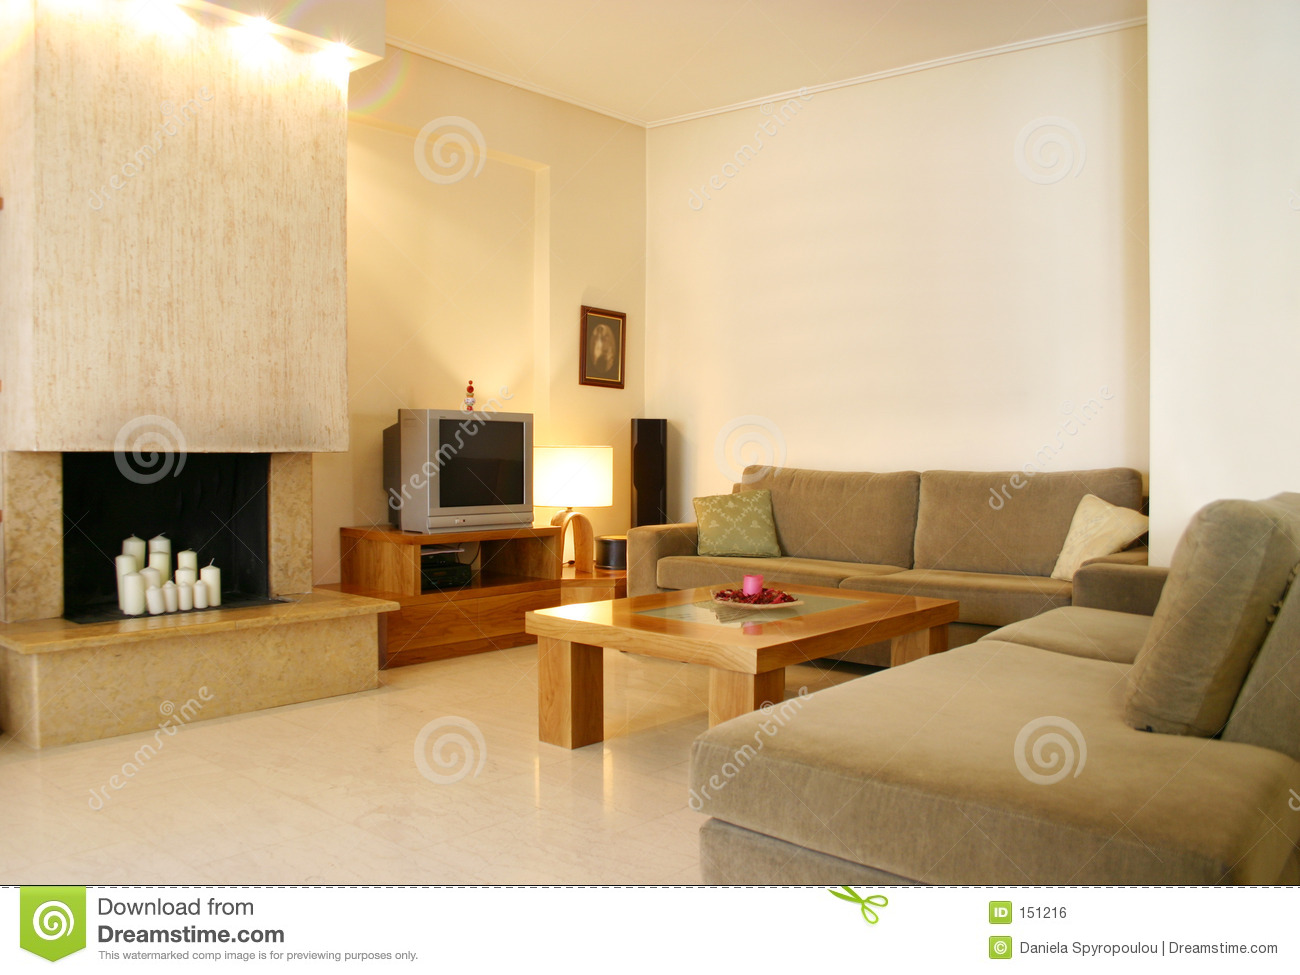 Interior Design Home New Home Interior Design Royalty Free Stock Image  Image 151216 Design Ideas